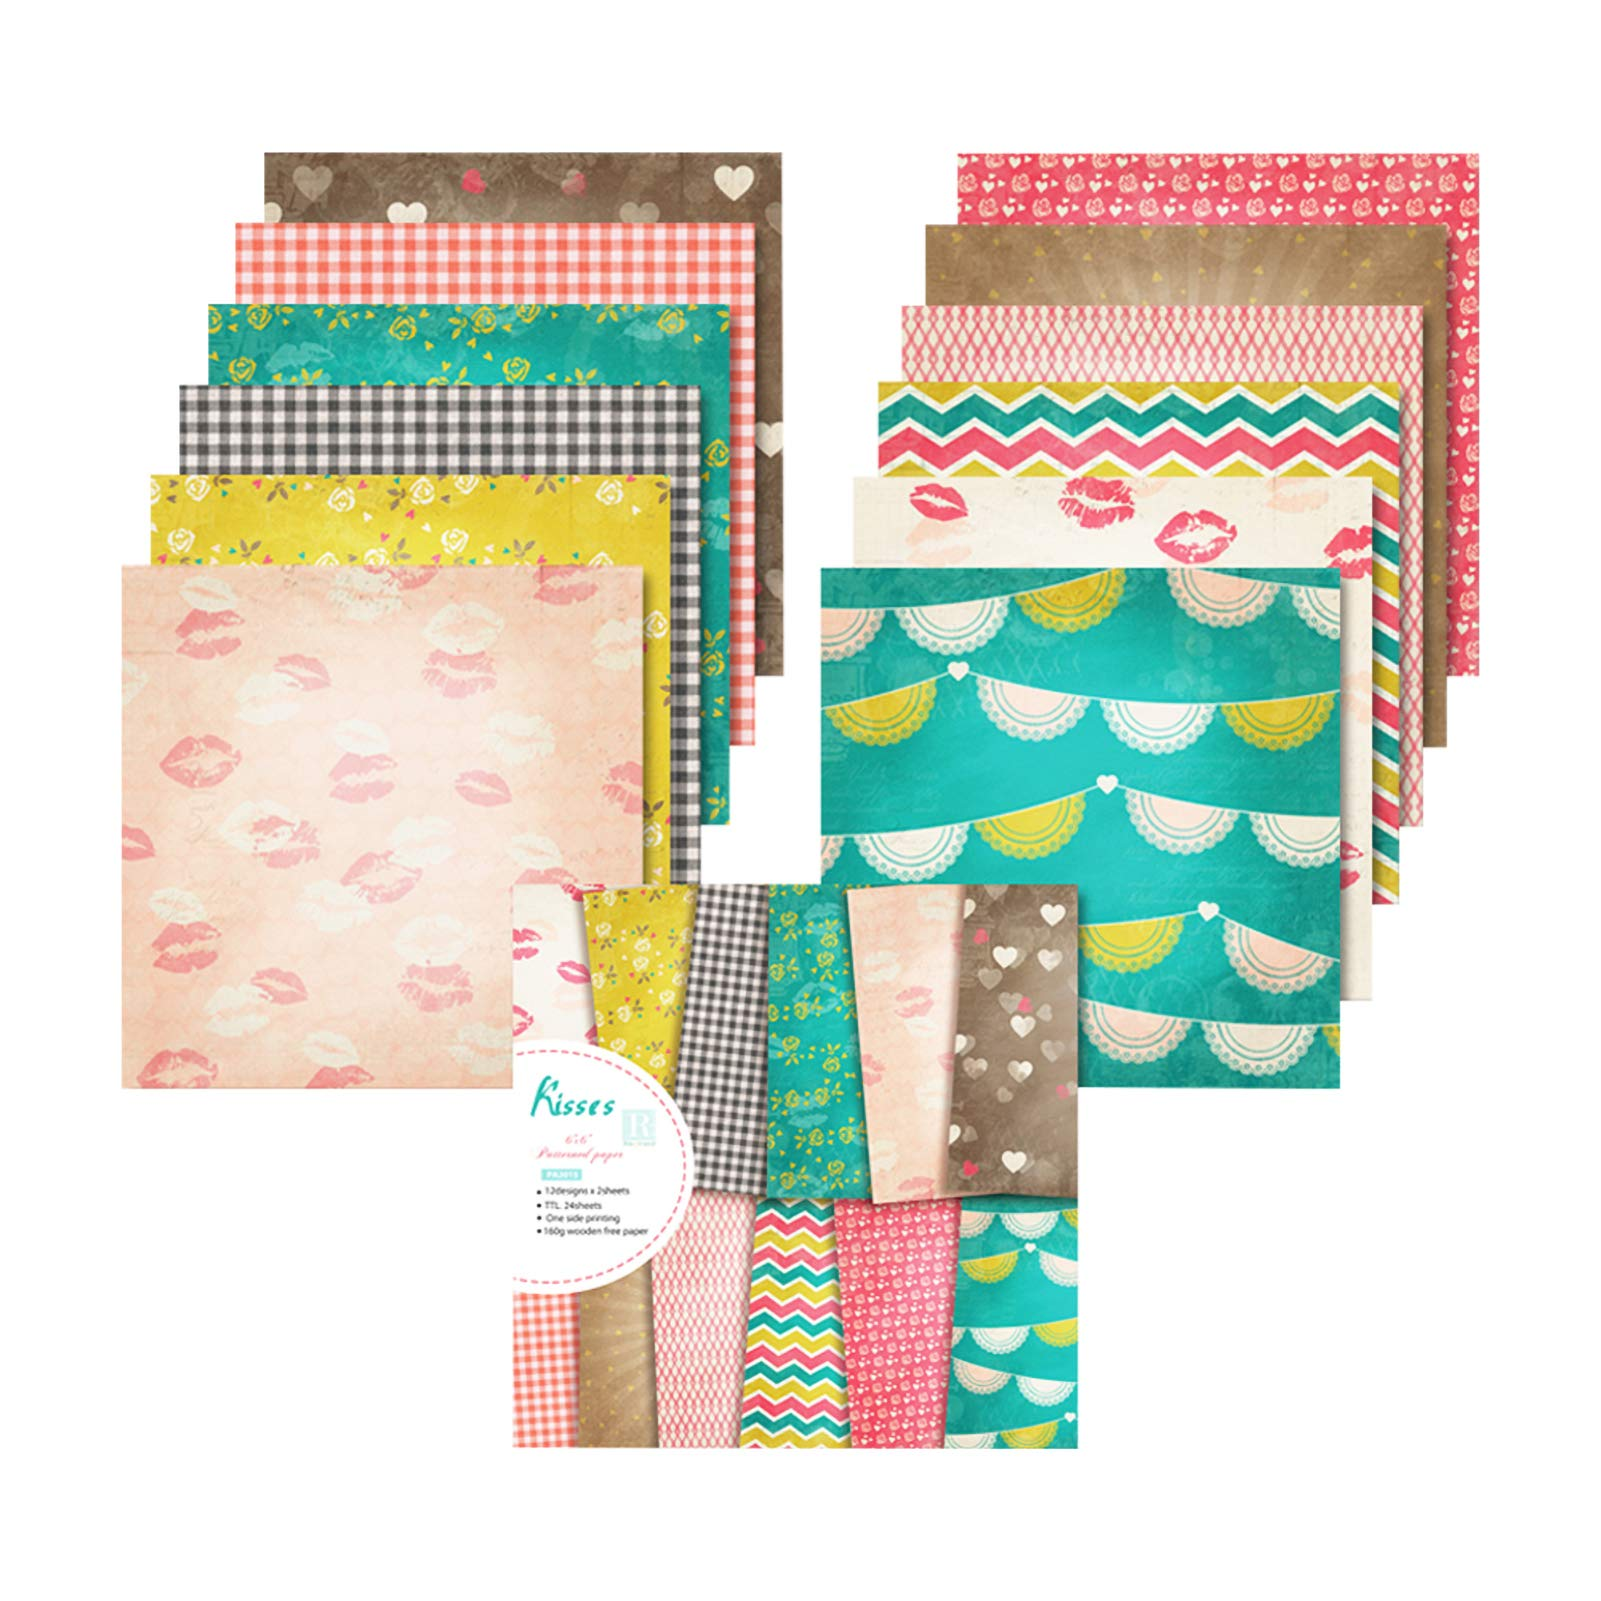 """YARUMI Pattern Paper Pack for Cardmaking,Pack of 24 Valentines Day Love Patterned Paper Pad,12 Designs Single-Sided 6""""x6"""" Wedding Album Scrapbook Paper Bright Colors Cardstock Recipe Decorative Pages"""